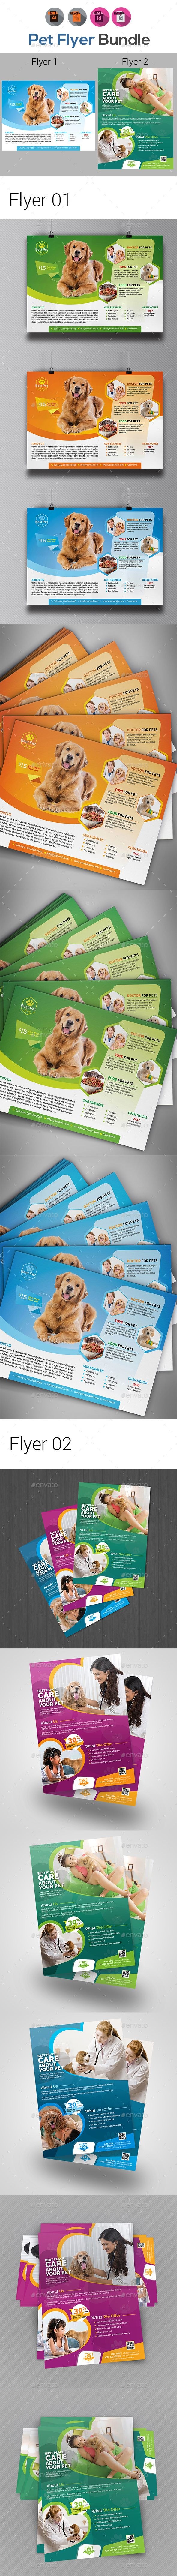 Pets #Flyer Templates - #Corporate Flyers Download here: https://graphicriver.net/item/pets-flyer-templates/19764785?ref=alena994